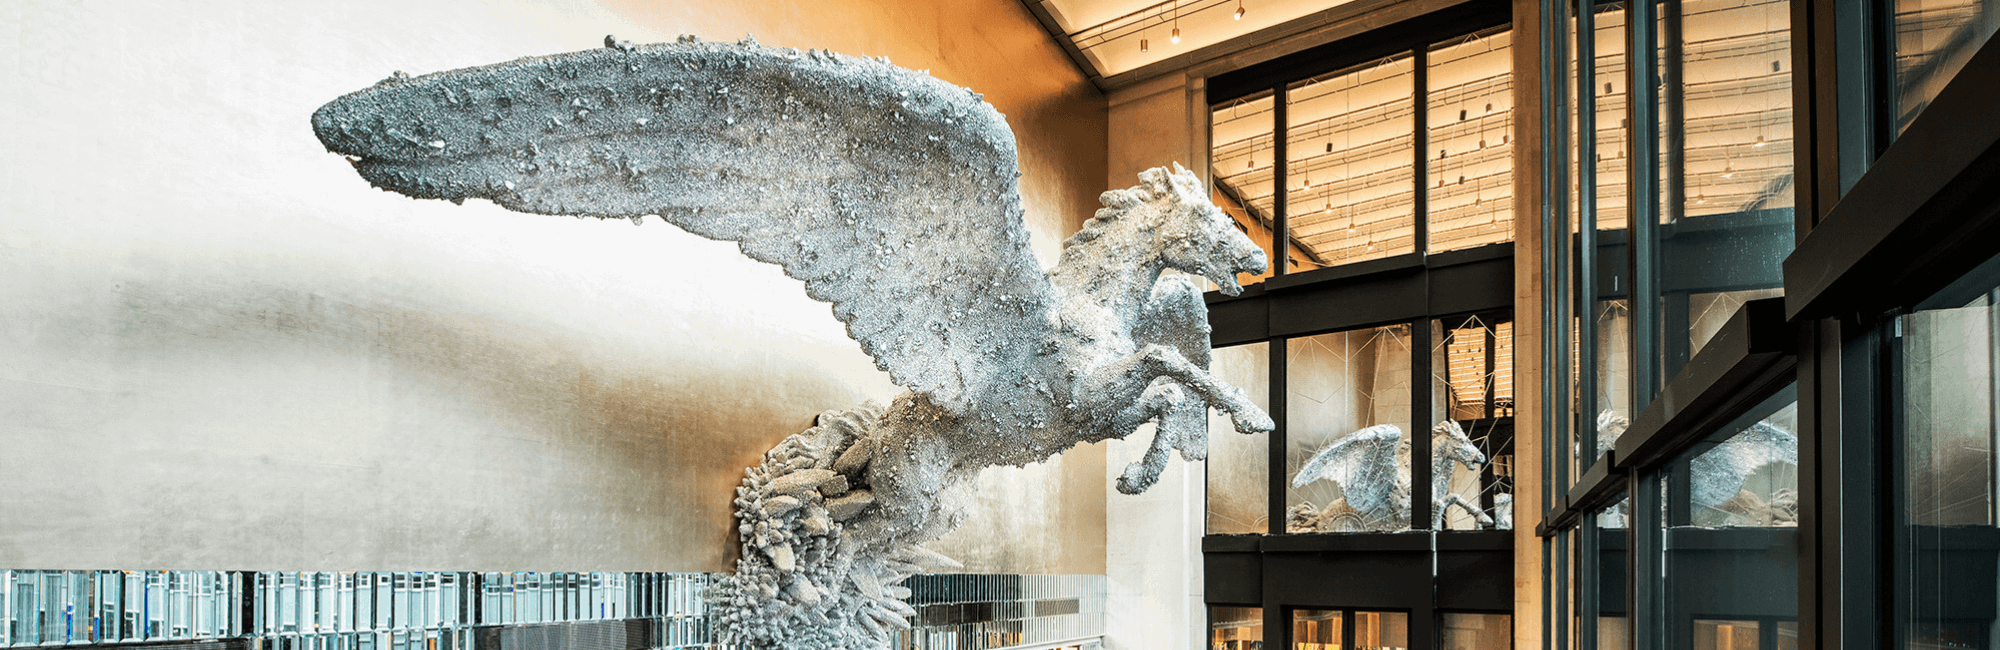 The Pegasus at Brasserie of Light Restaurant near Oxford Street